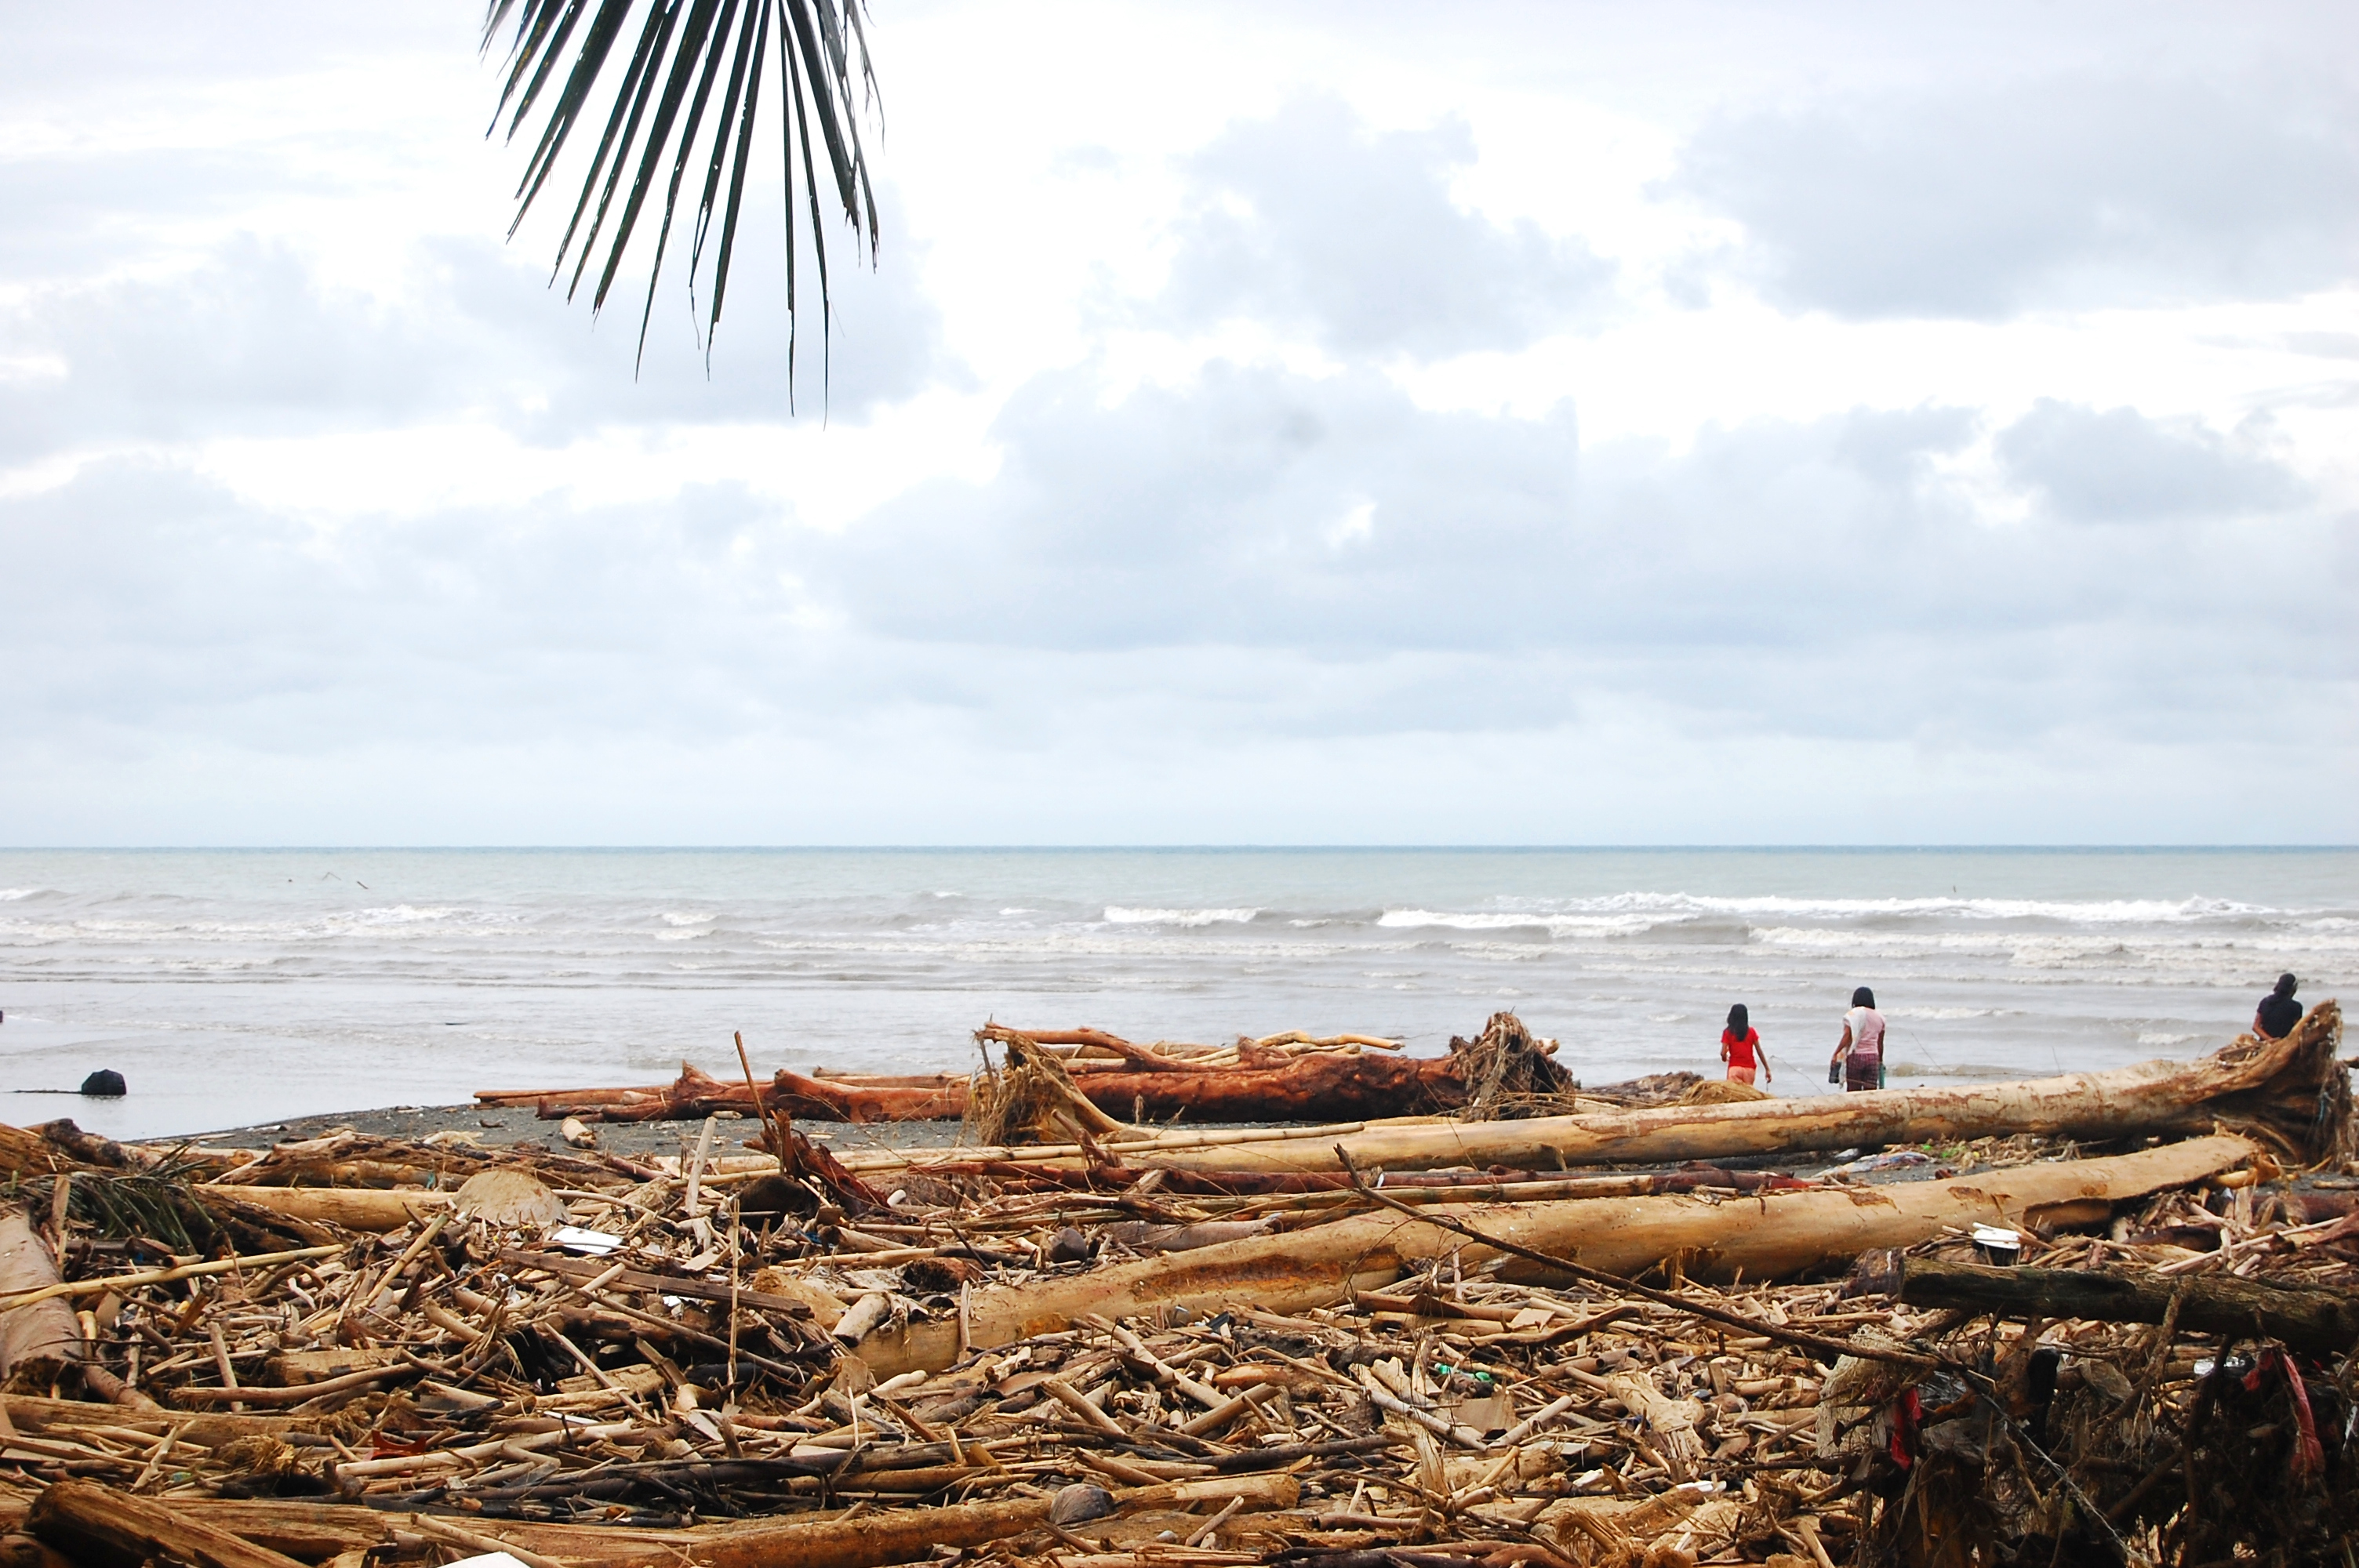 A Beach Dumped With Logs And Garbage After A Typhoon Sendong Washi In Iligan City, Philippines.